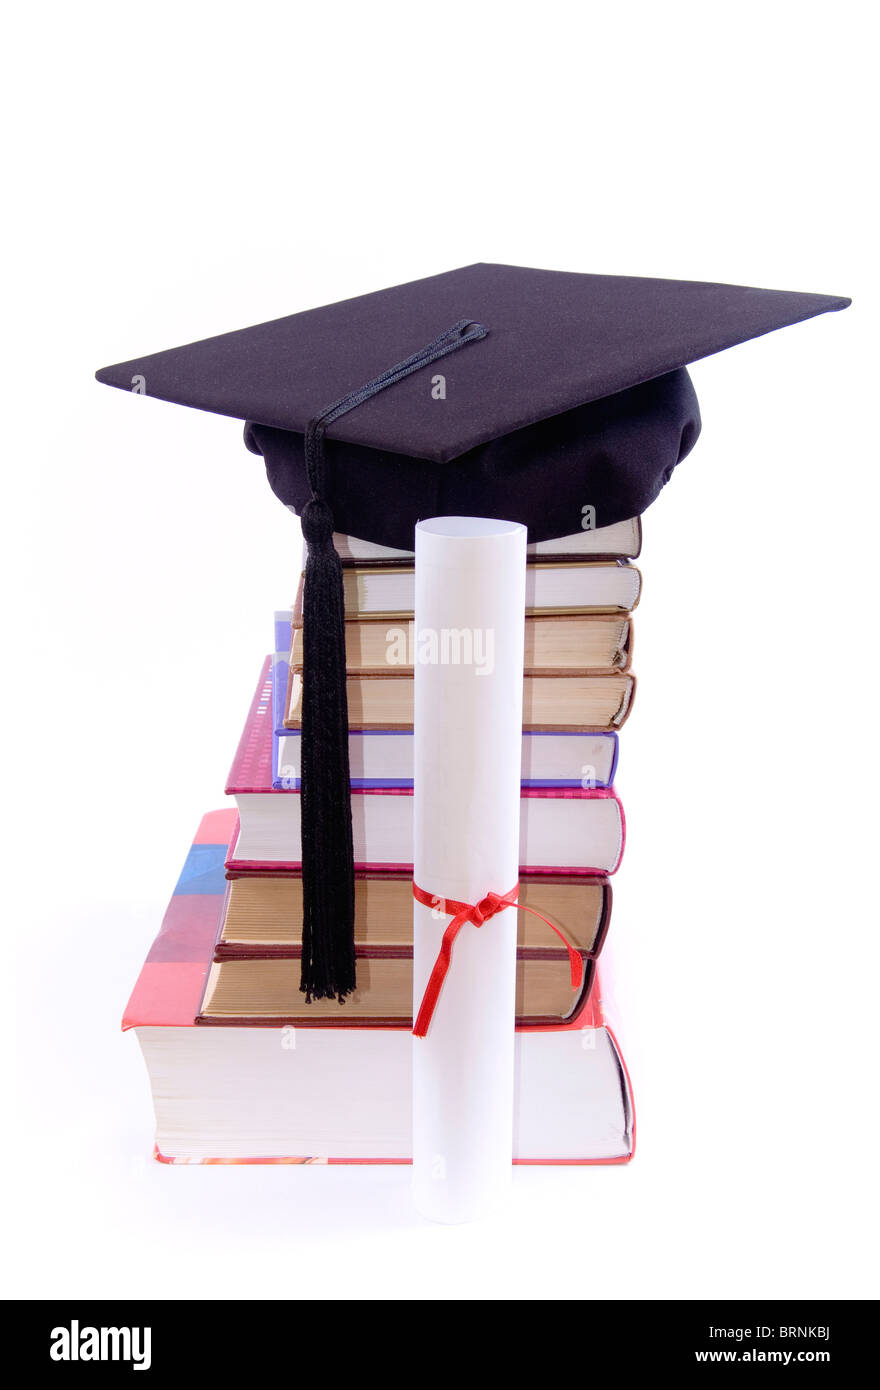 A lot of books, tower made of books with student hat on it, and diploma, against a white background - Stock Image